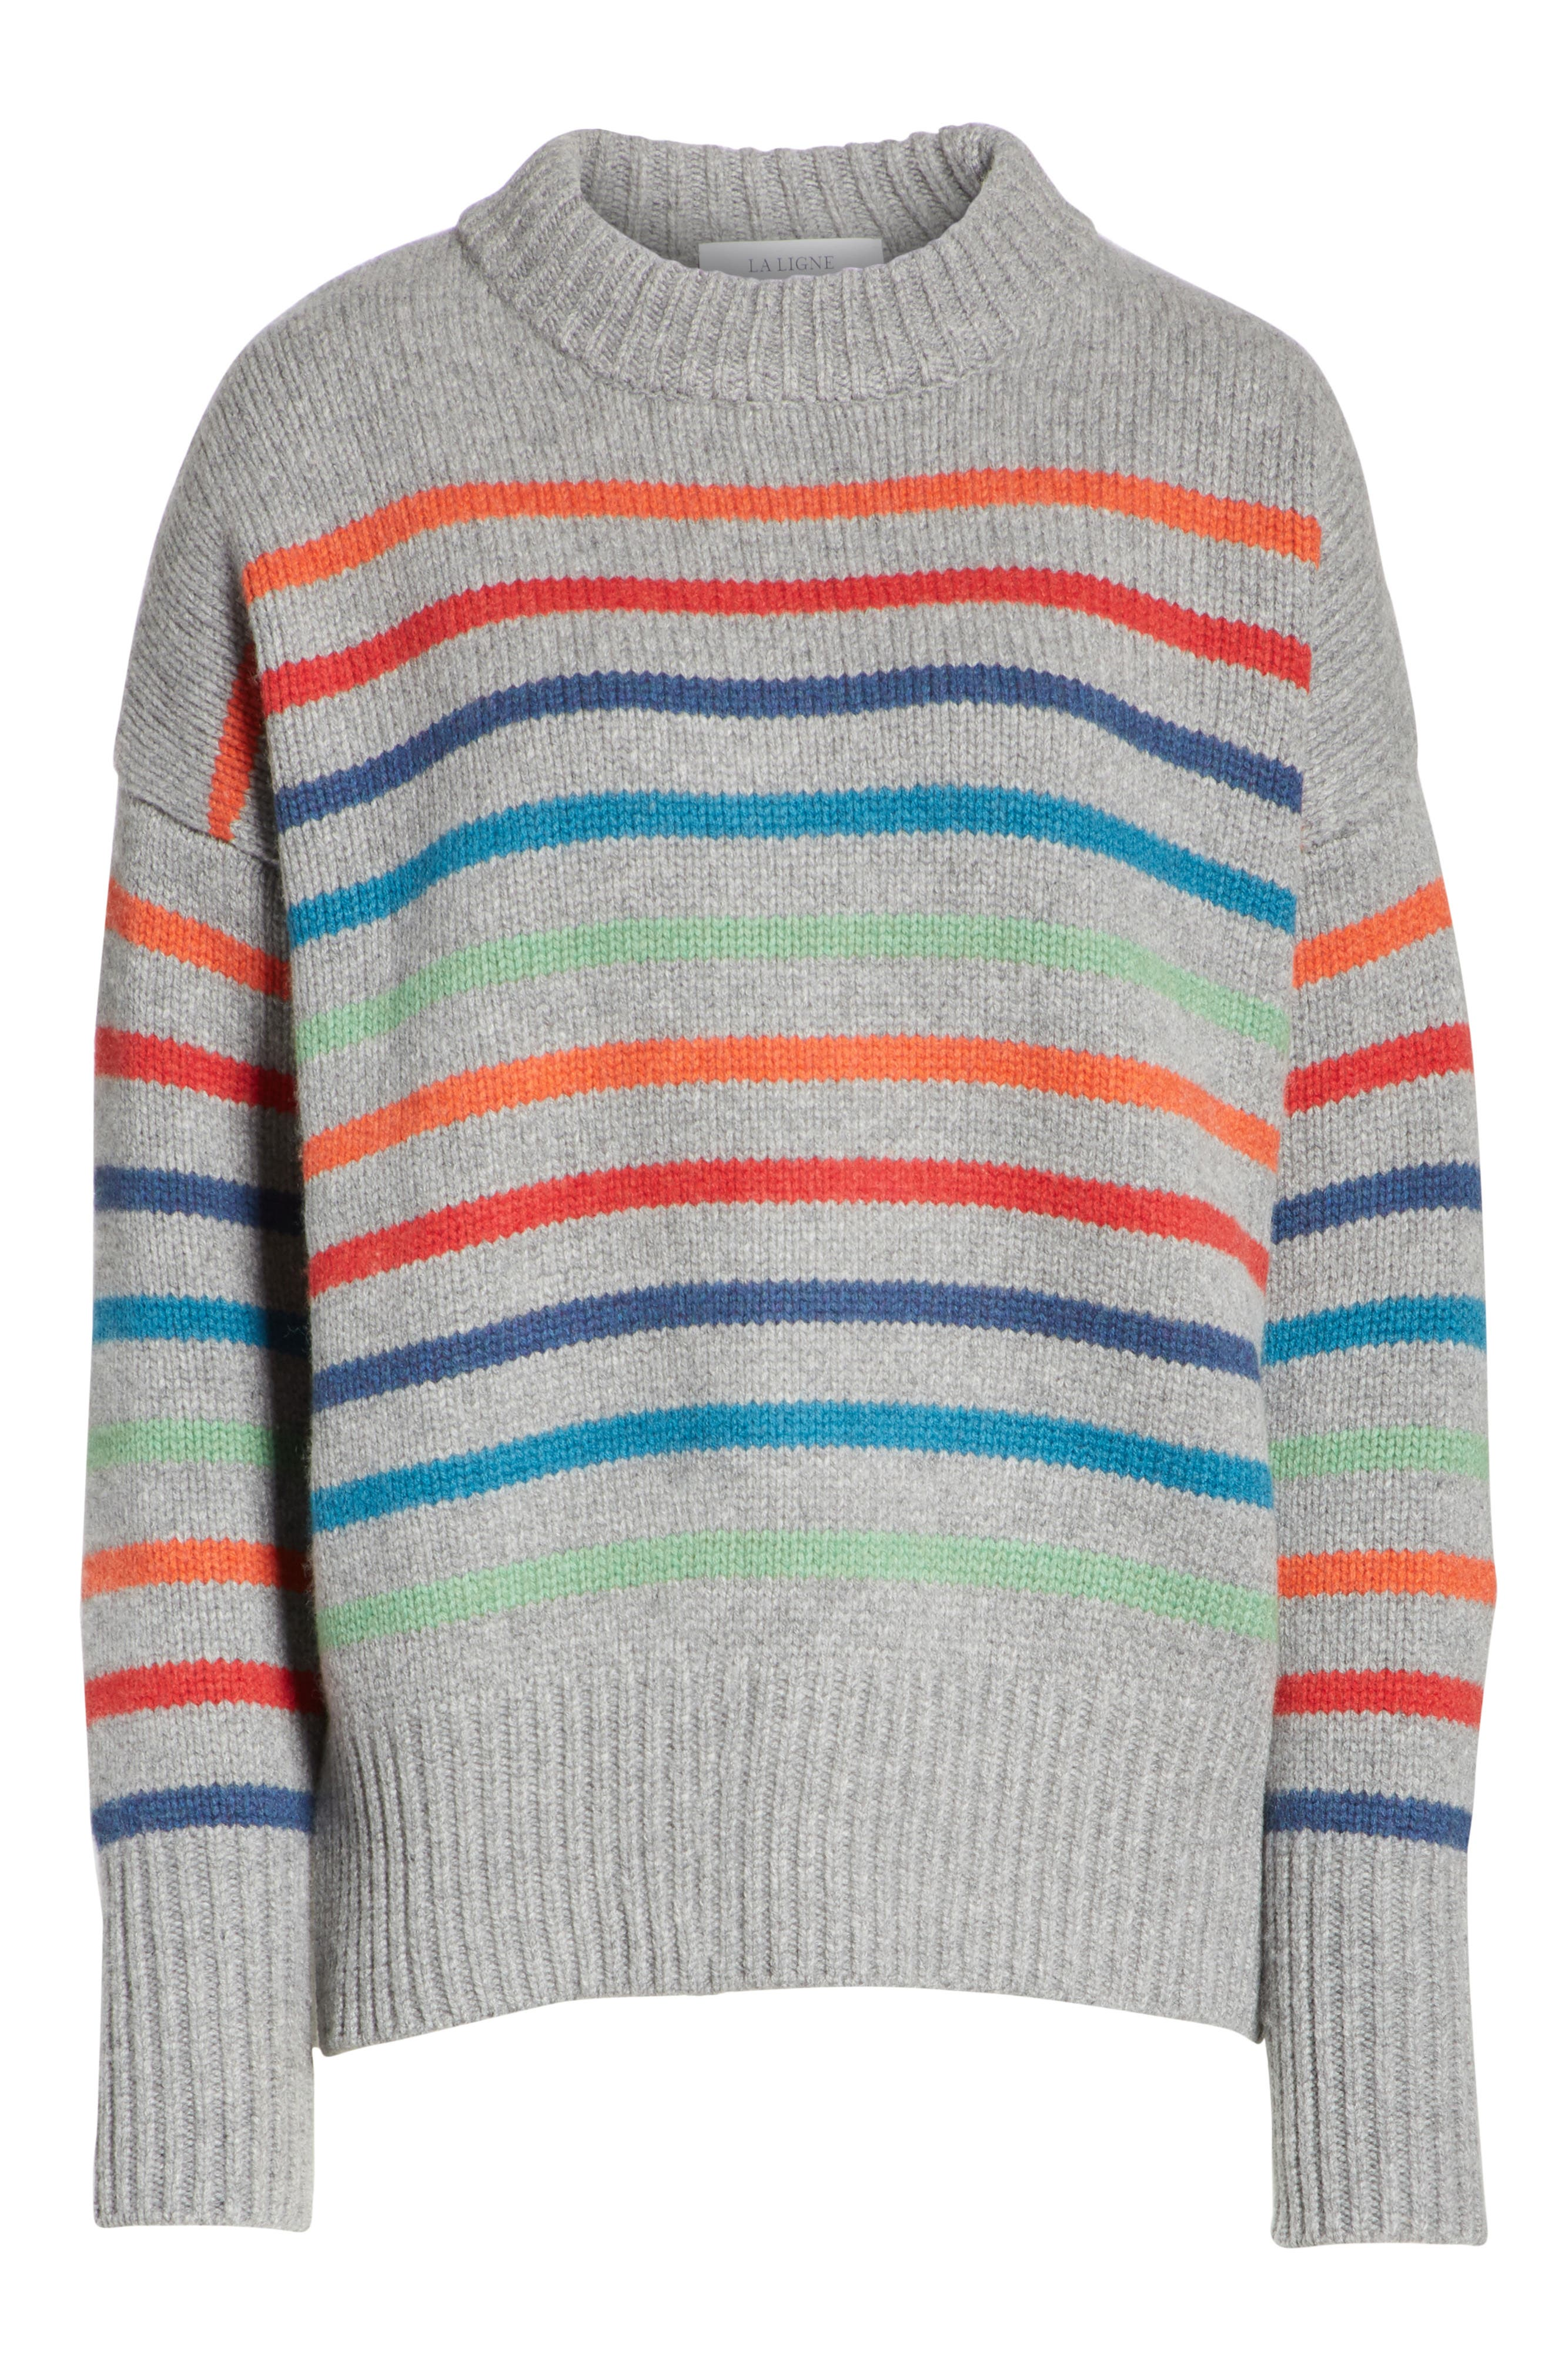 Marin Wool & Cashmere Sweater,                             Alternate thumbnail 6, color,                             RAINBOW STRIPE